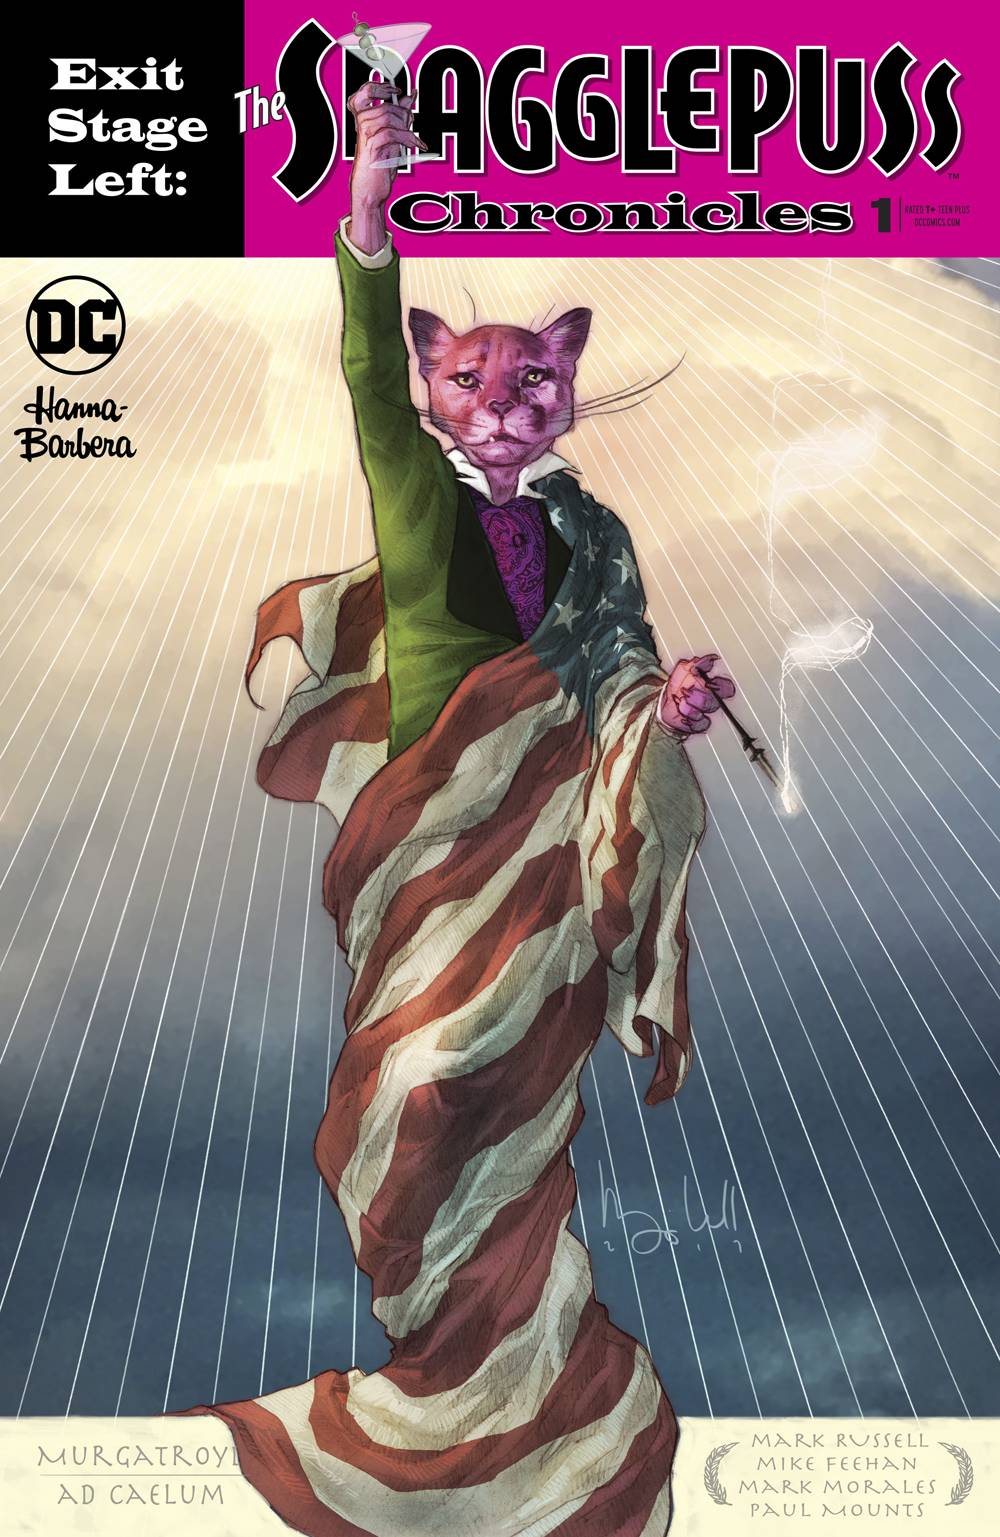 EXIT STAGE LEFT THE SNAGGLEPUSS CHRONICLES 1 of 6.jpg